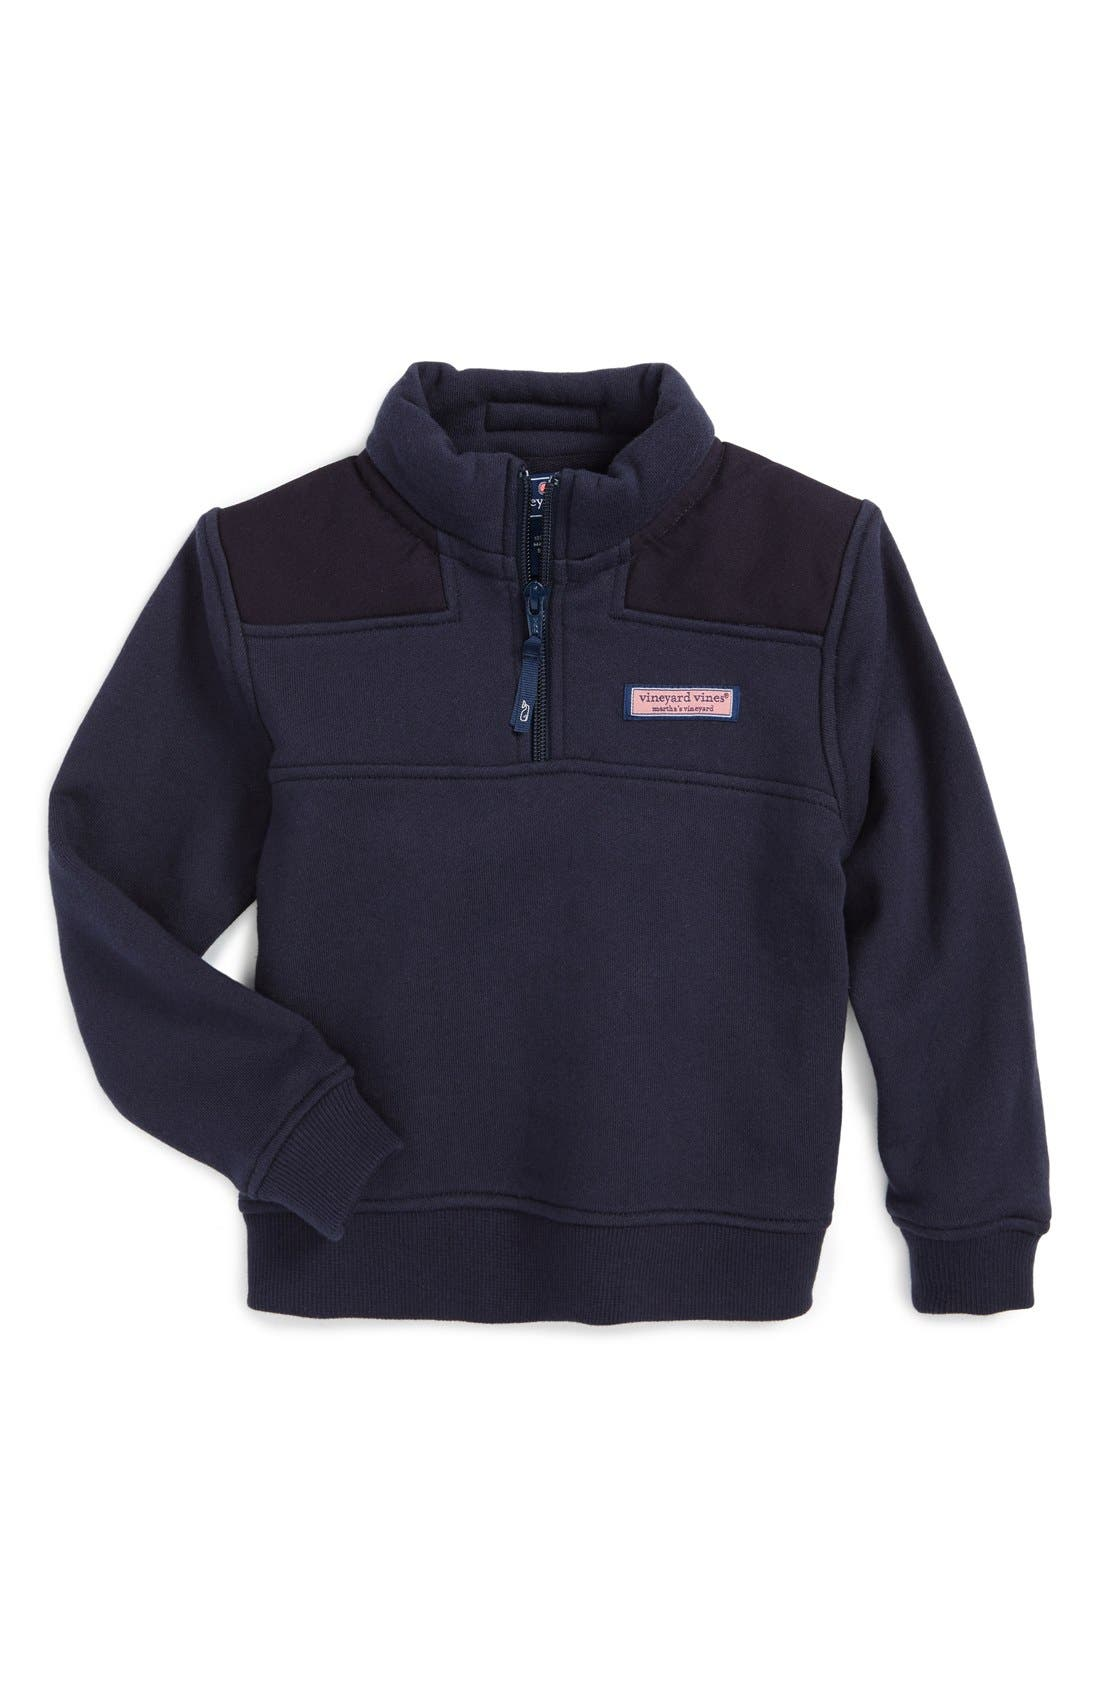 Boys Vineyard Vines Shep Quarter Zip Pullover Size 6  Blue